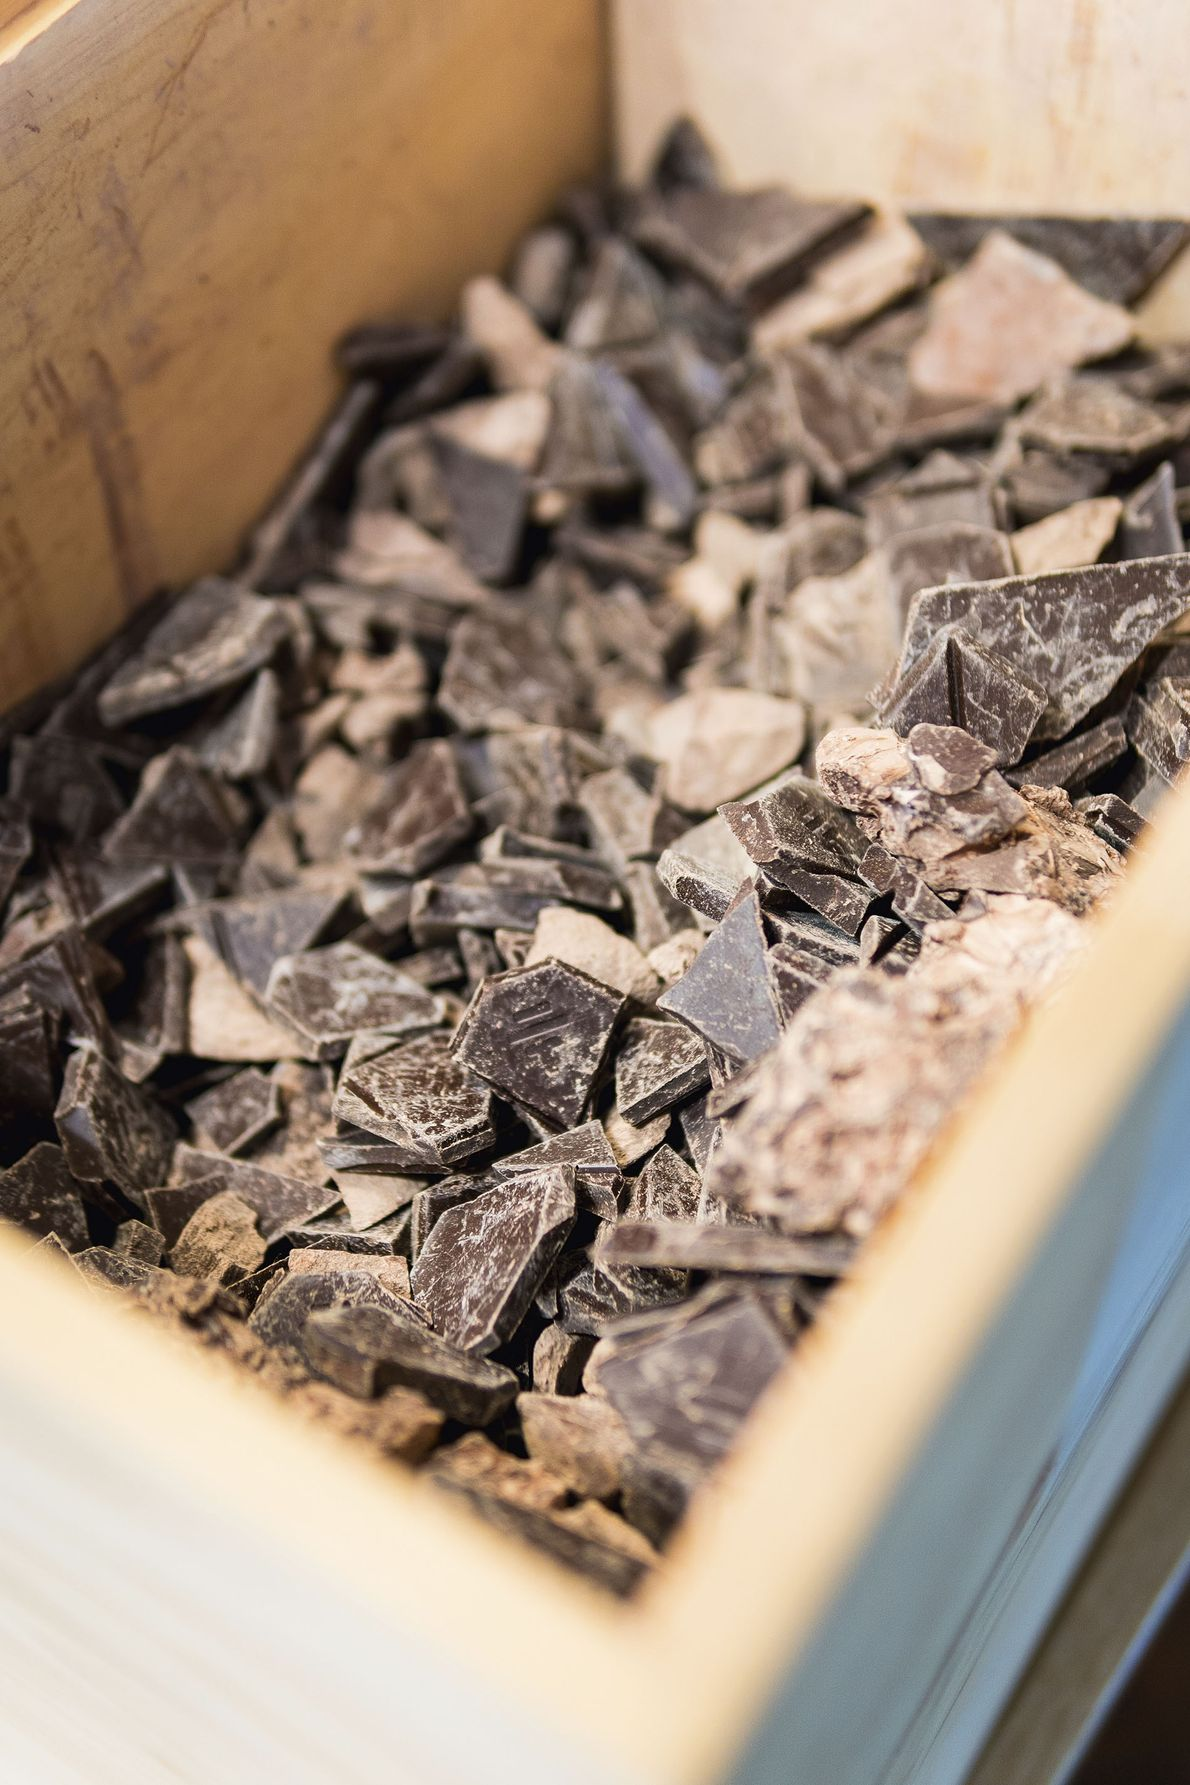 Chunks of To'ak chocolate being aged inside a wooden box.